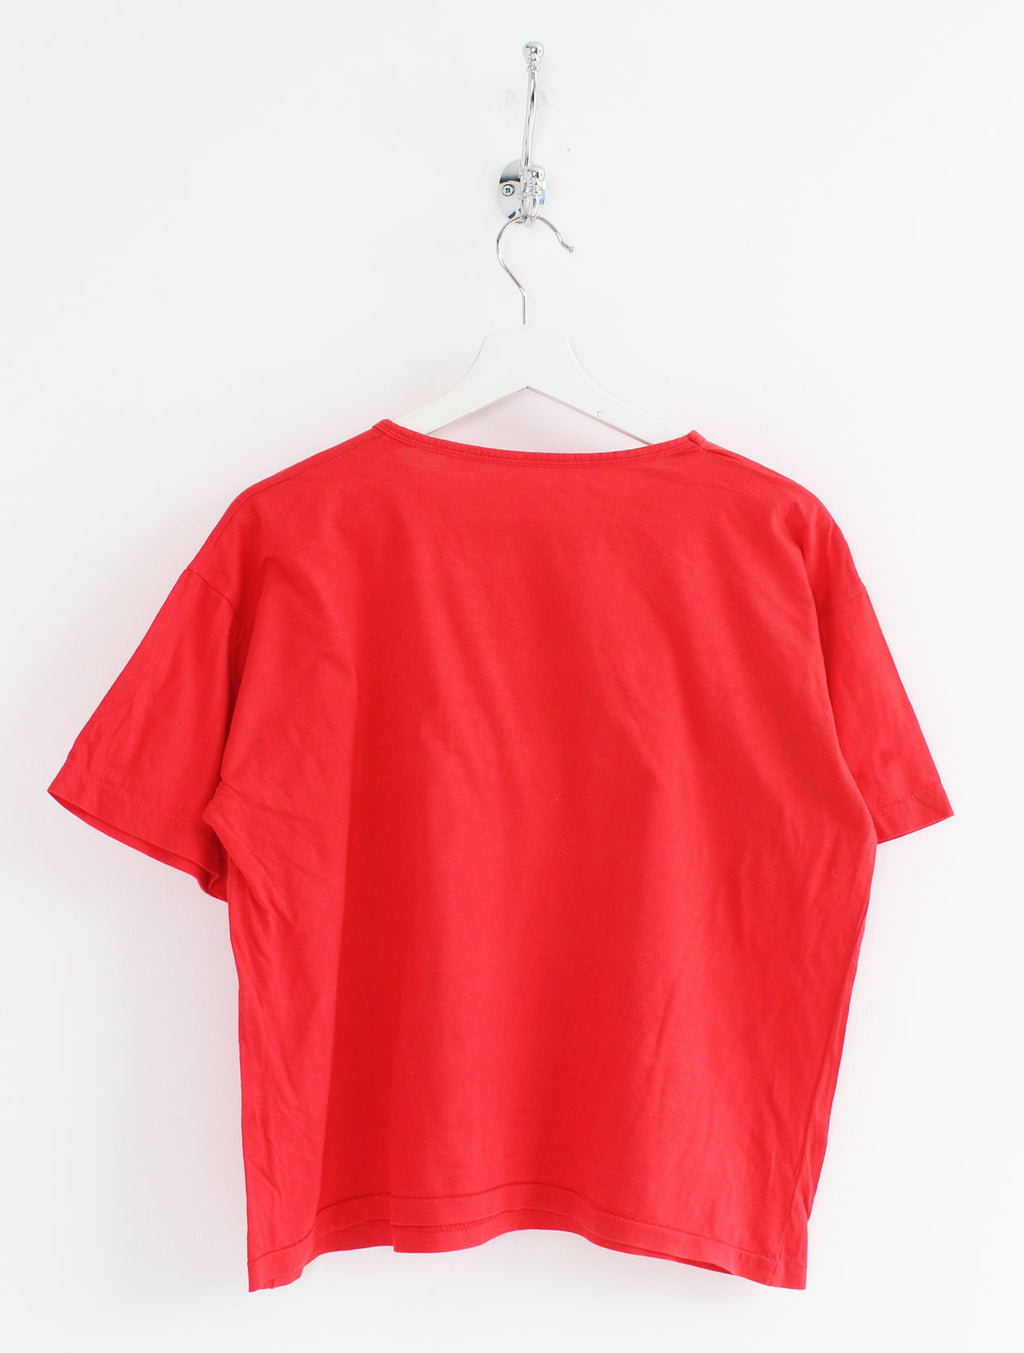 Women's Chanel T-Shirt (L)